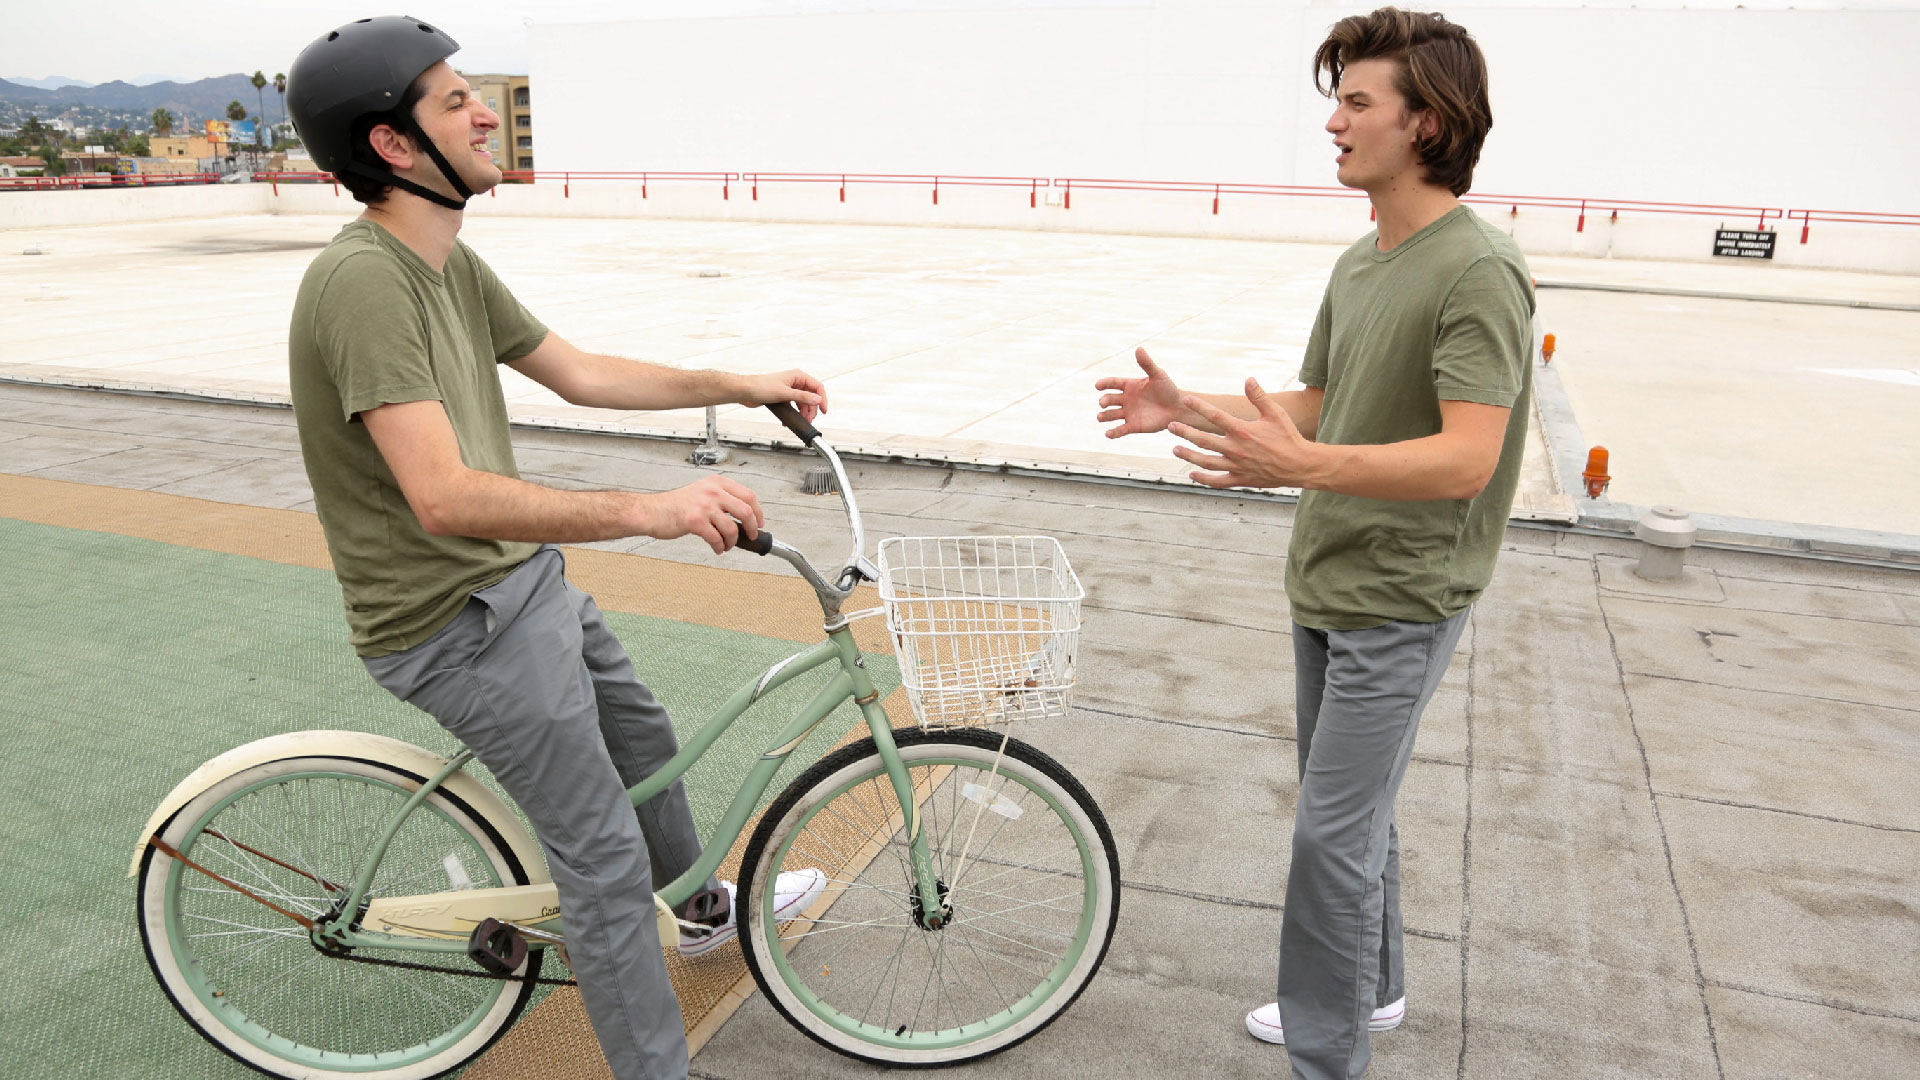 Gearing up for the huge bicycle stunt